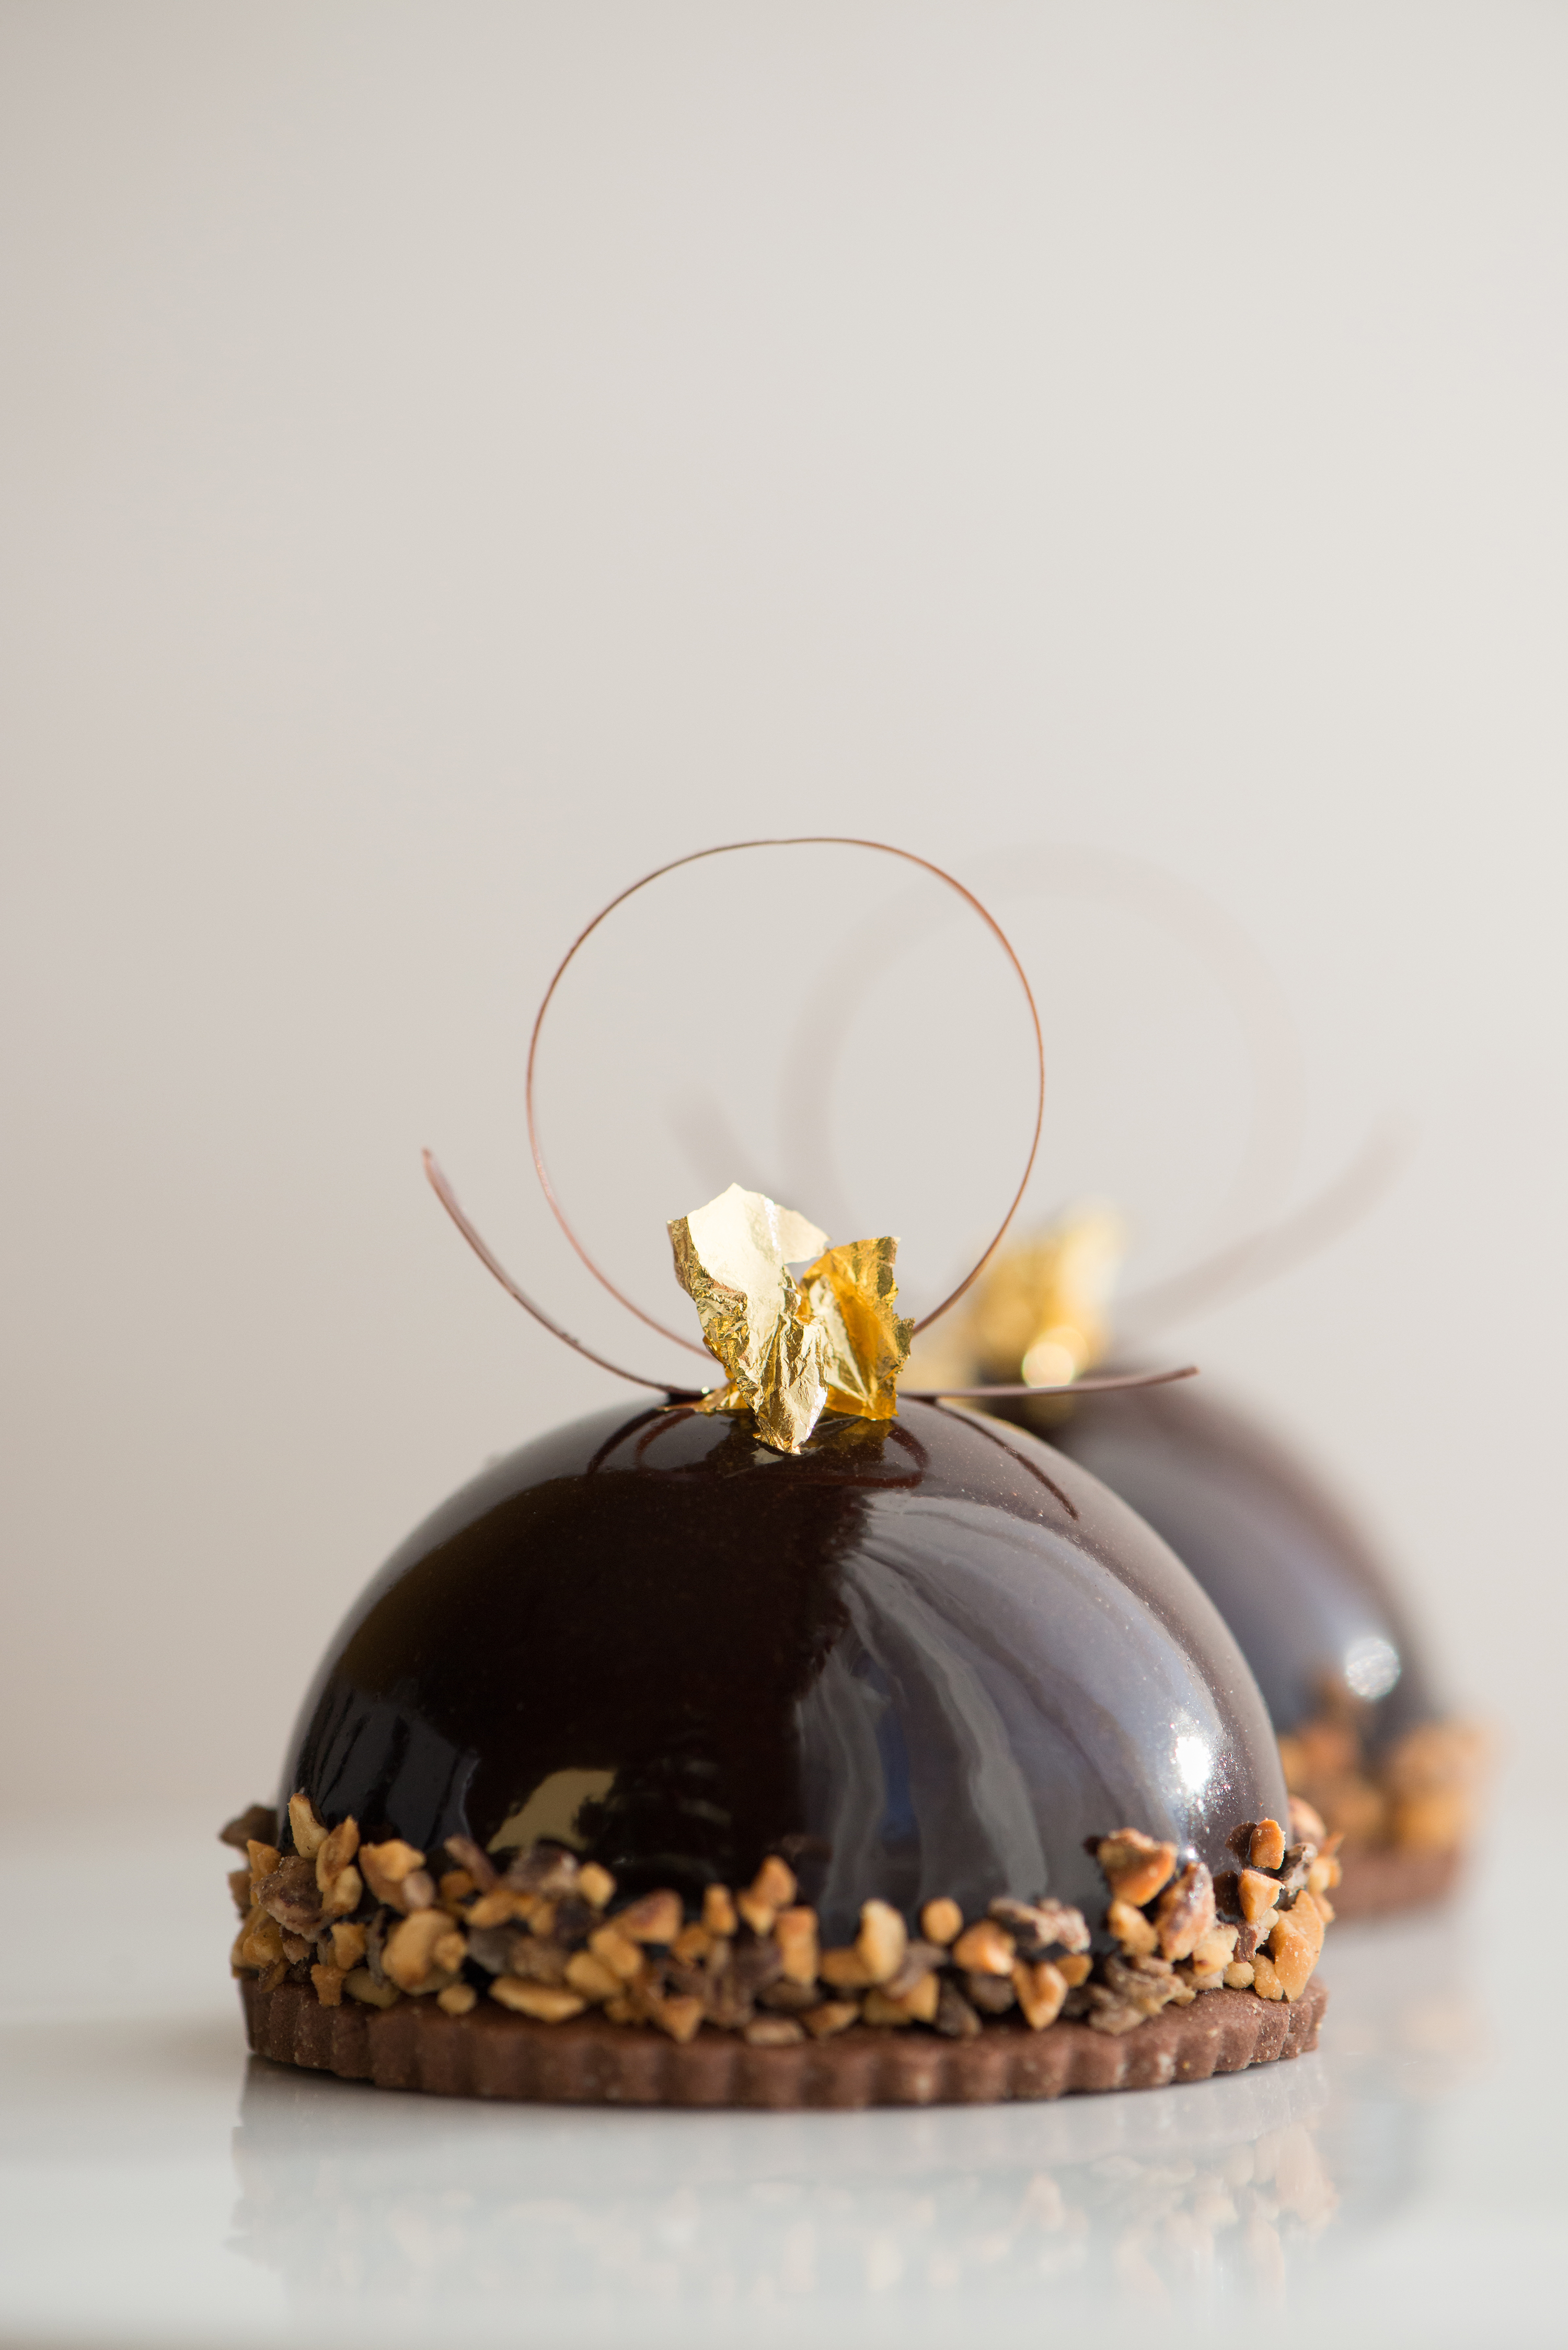 Chocolate Mousse Petit Gateau | Now, Forager | Teresa Floyd Photography